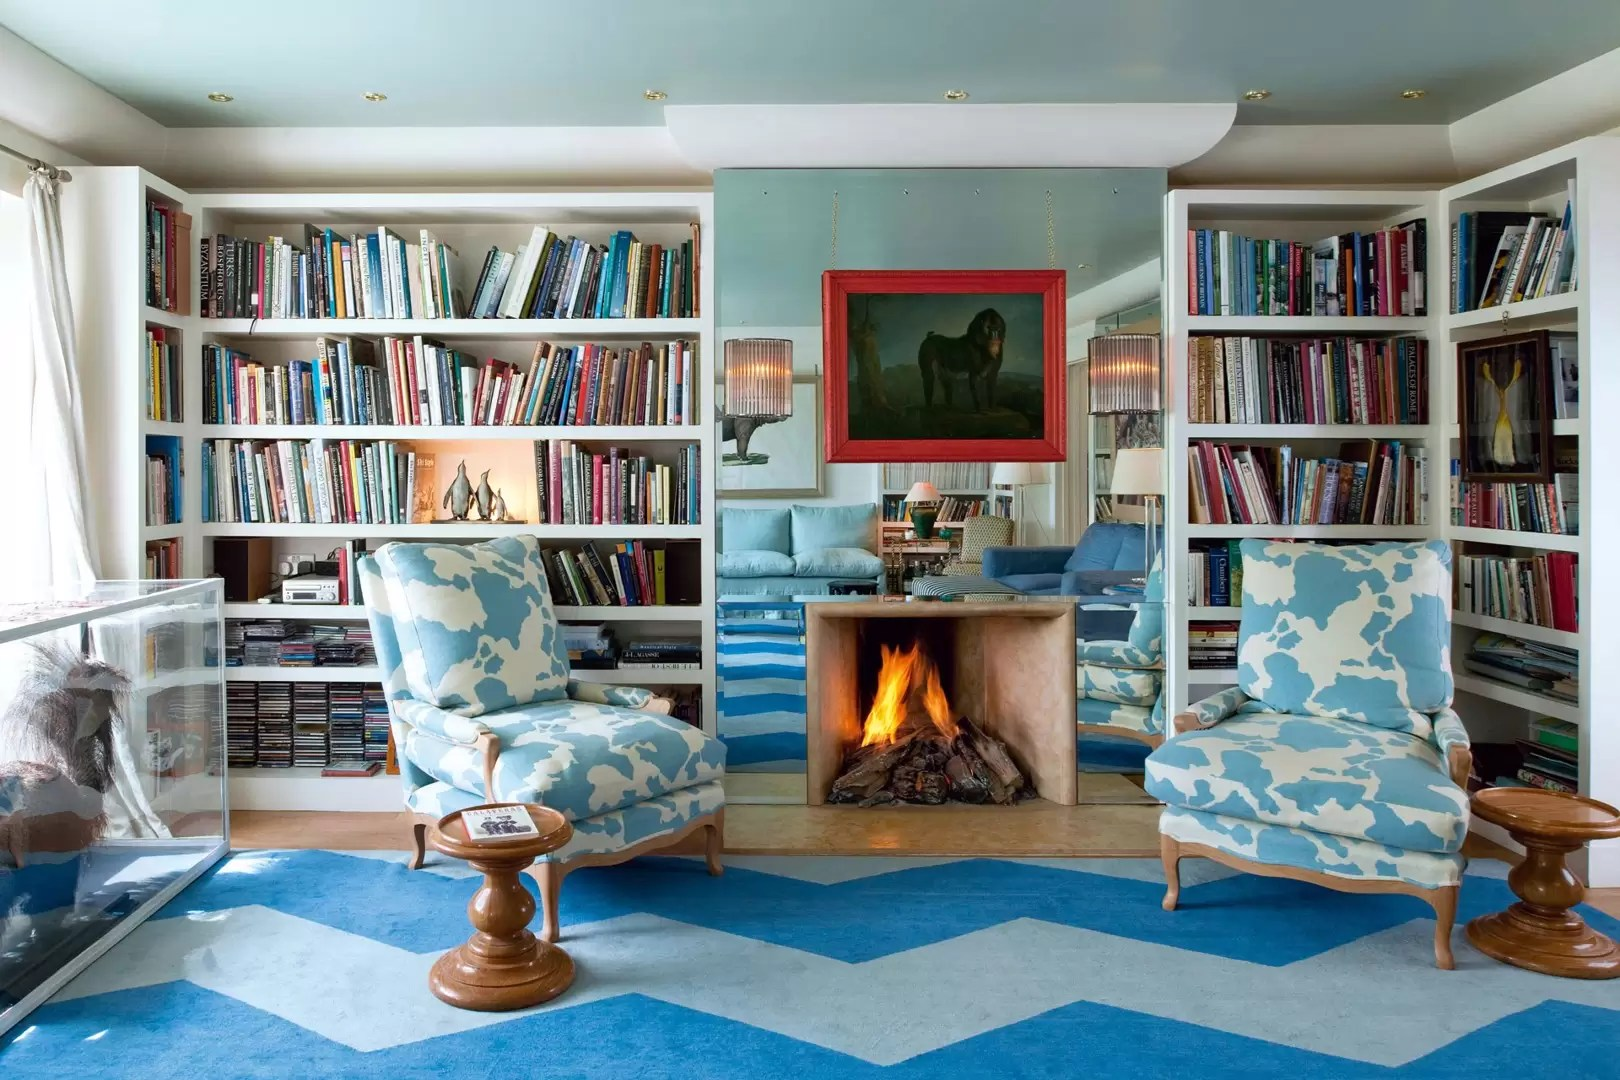 Masterly Living Rooms House Blue Living Room Wall Decor Blue Living Room Blue Living Room Ideas Blue Paint Ideas Wood Trim Living Rooms House Garden Blue Living Room Ideas Blue Paint Ideas houzz 01 Blue Living Room